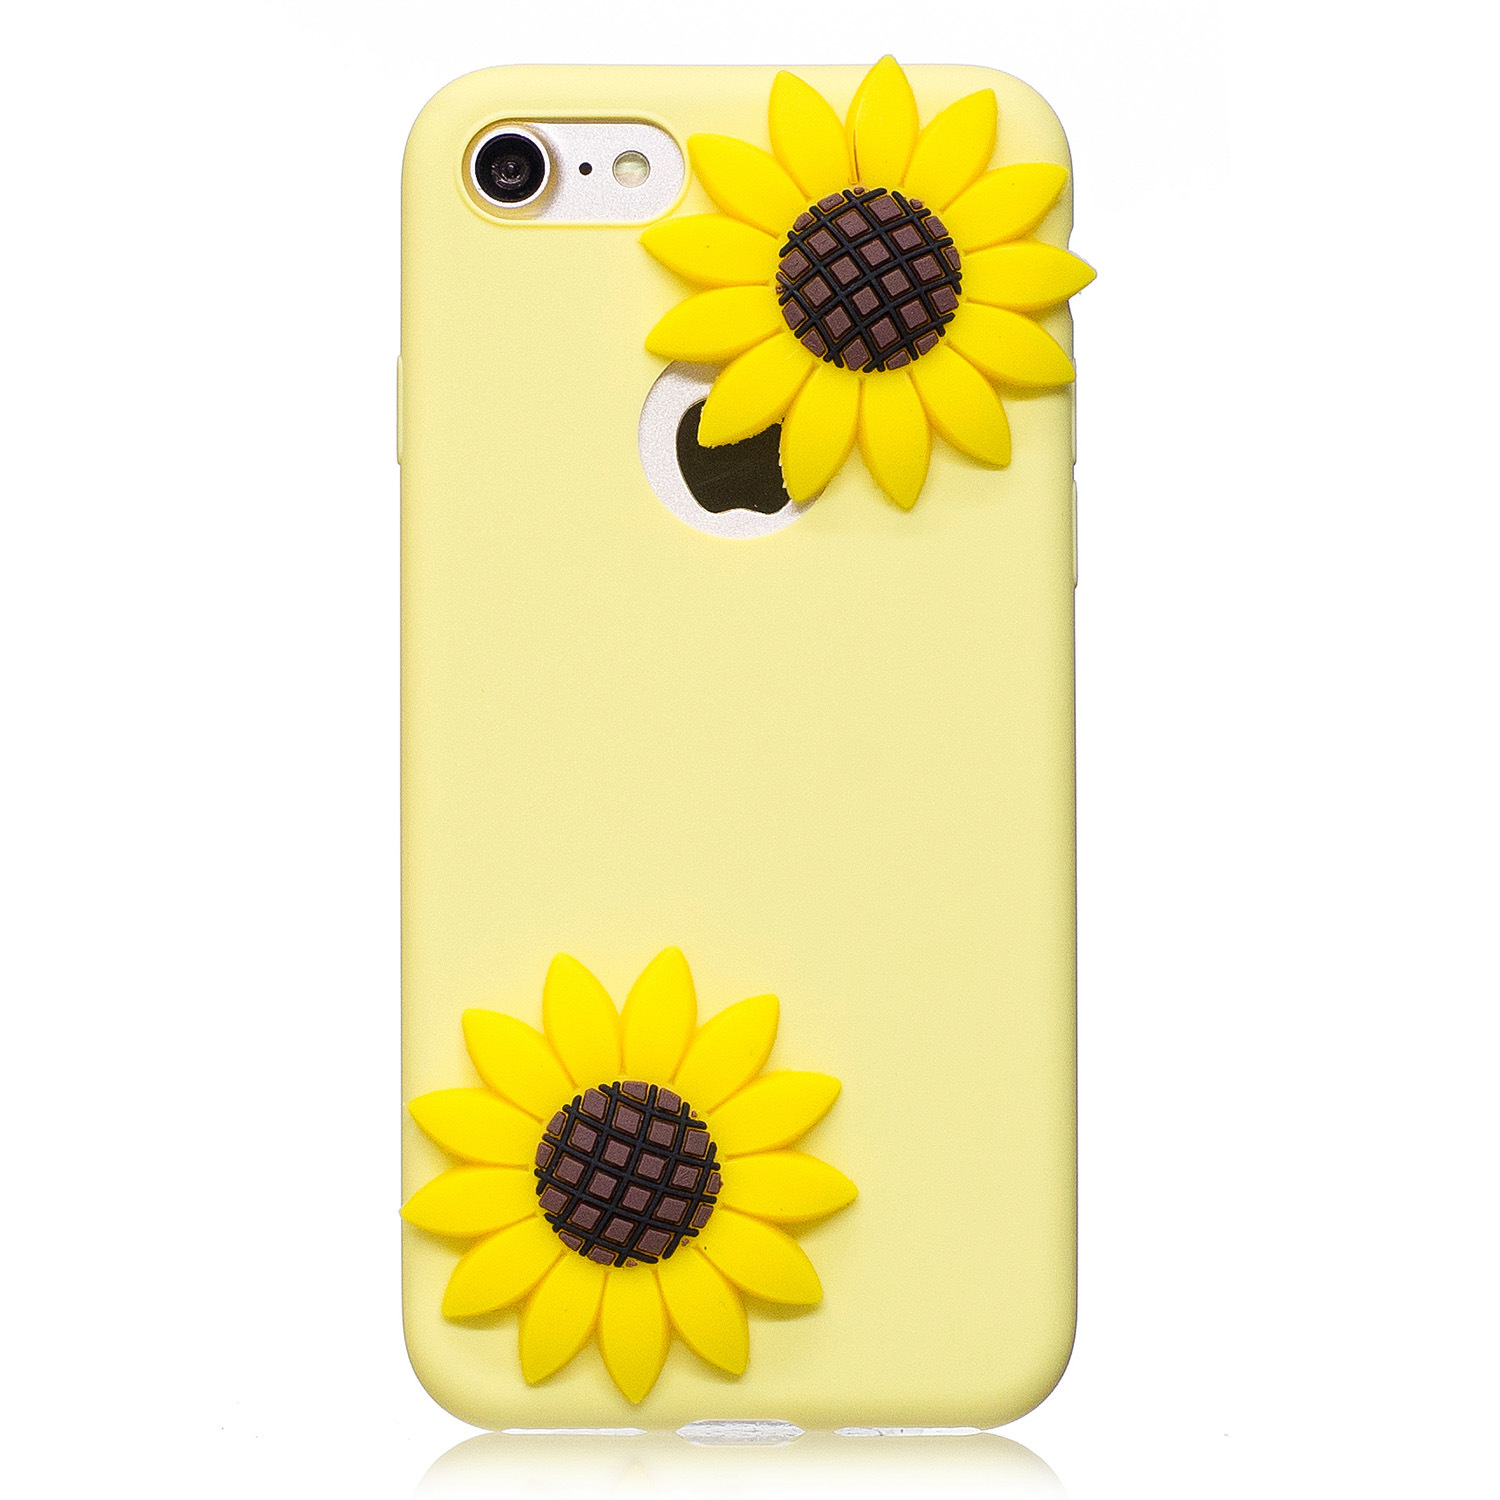 Cell Phone Case For Iphone 6 6p 7 7p